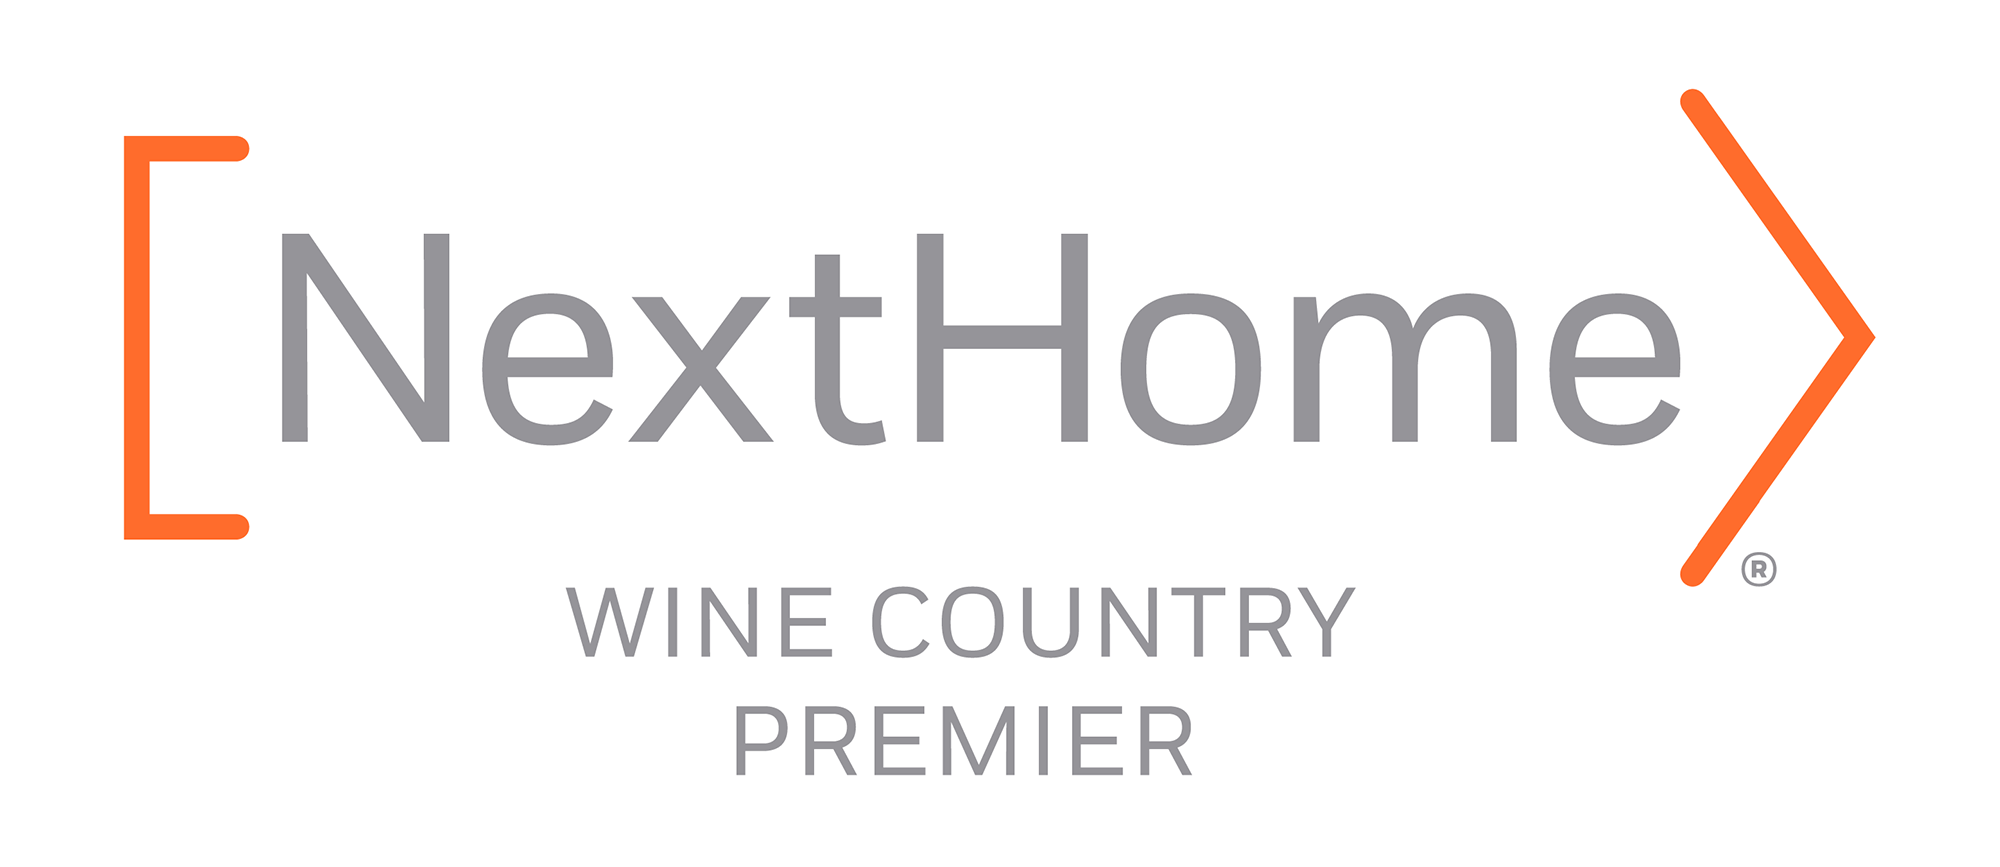 NextHome Wine Country Premier